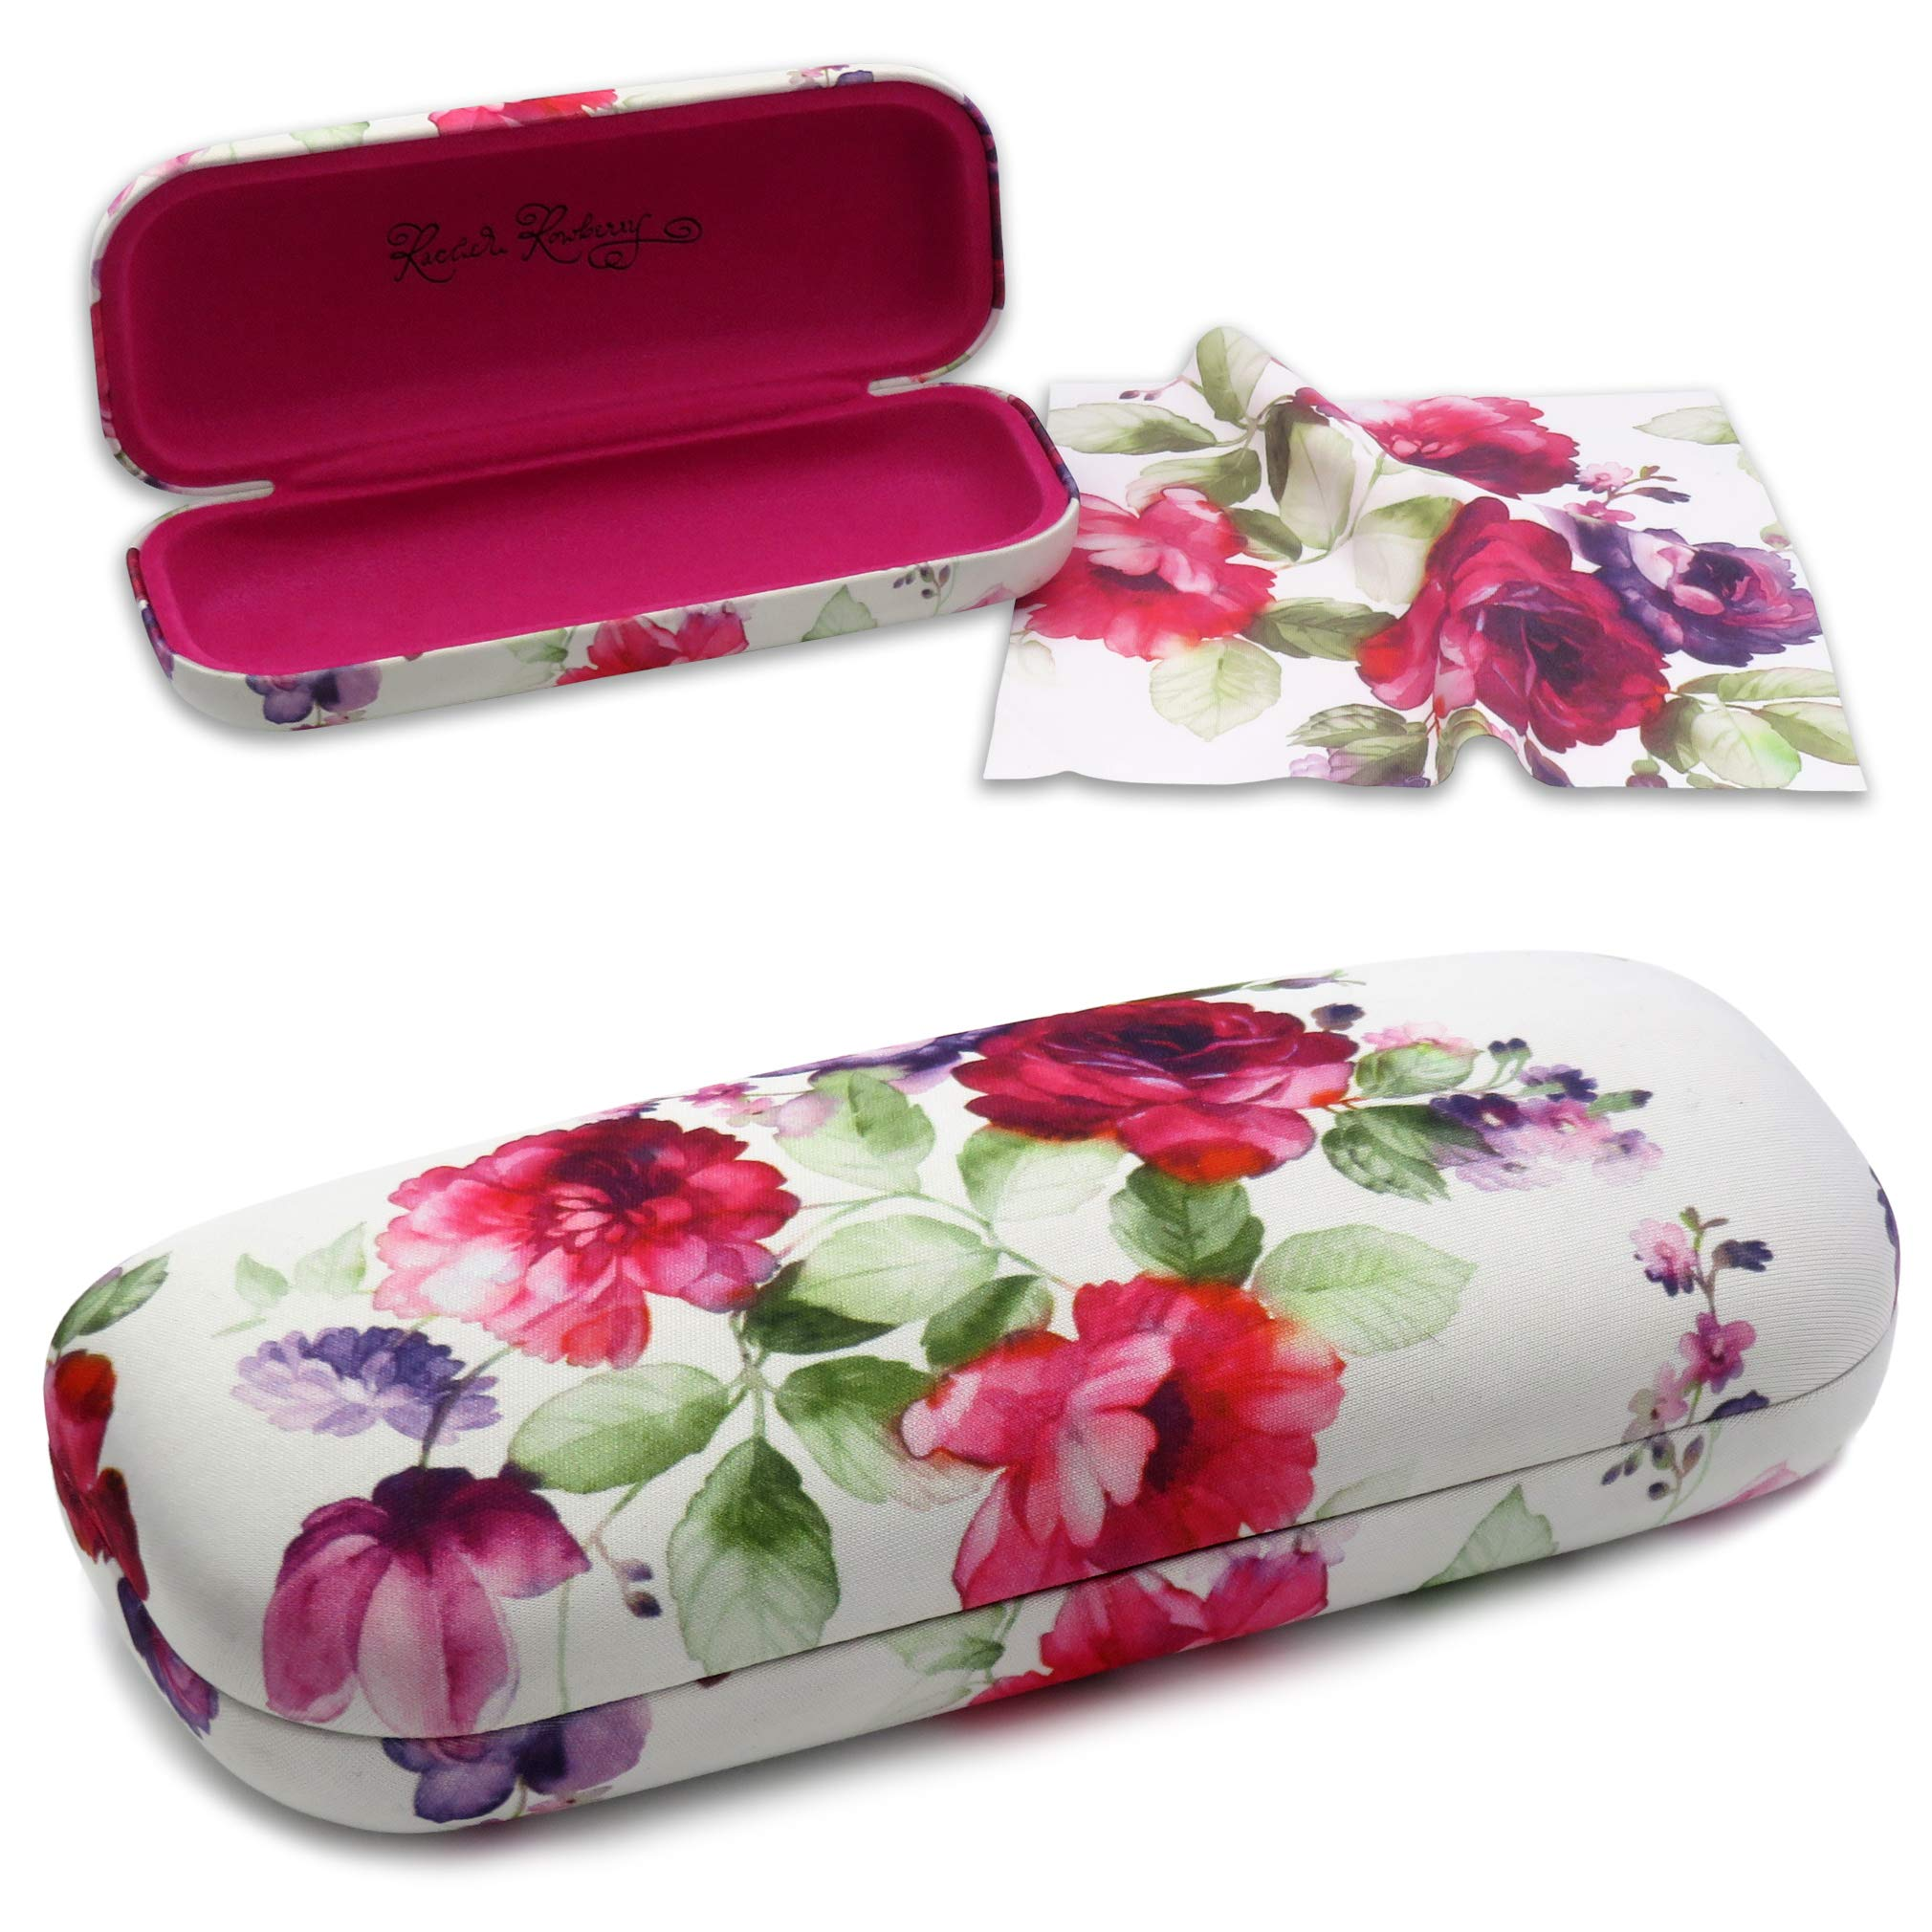 Floral Medium Protective Hard Shell Glasses Case for Eyeglasses and Sunglasses with Microfiber Cleaning Cloth by Rachel Rowberry (Cranberry Rose)